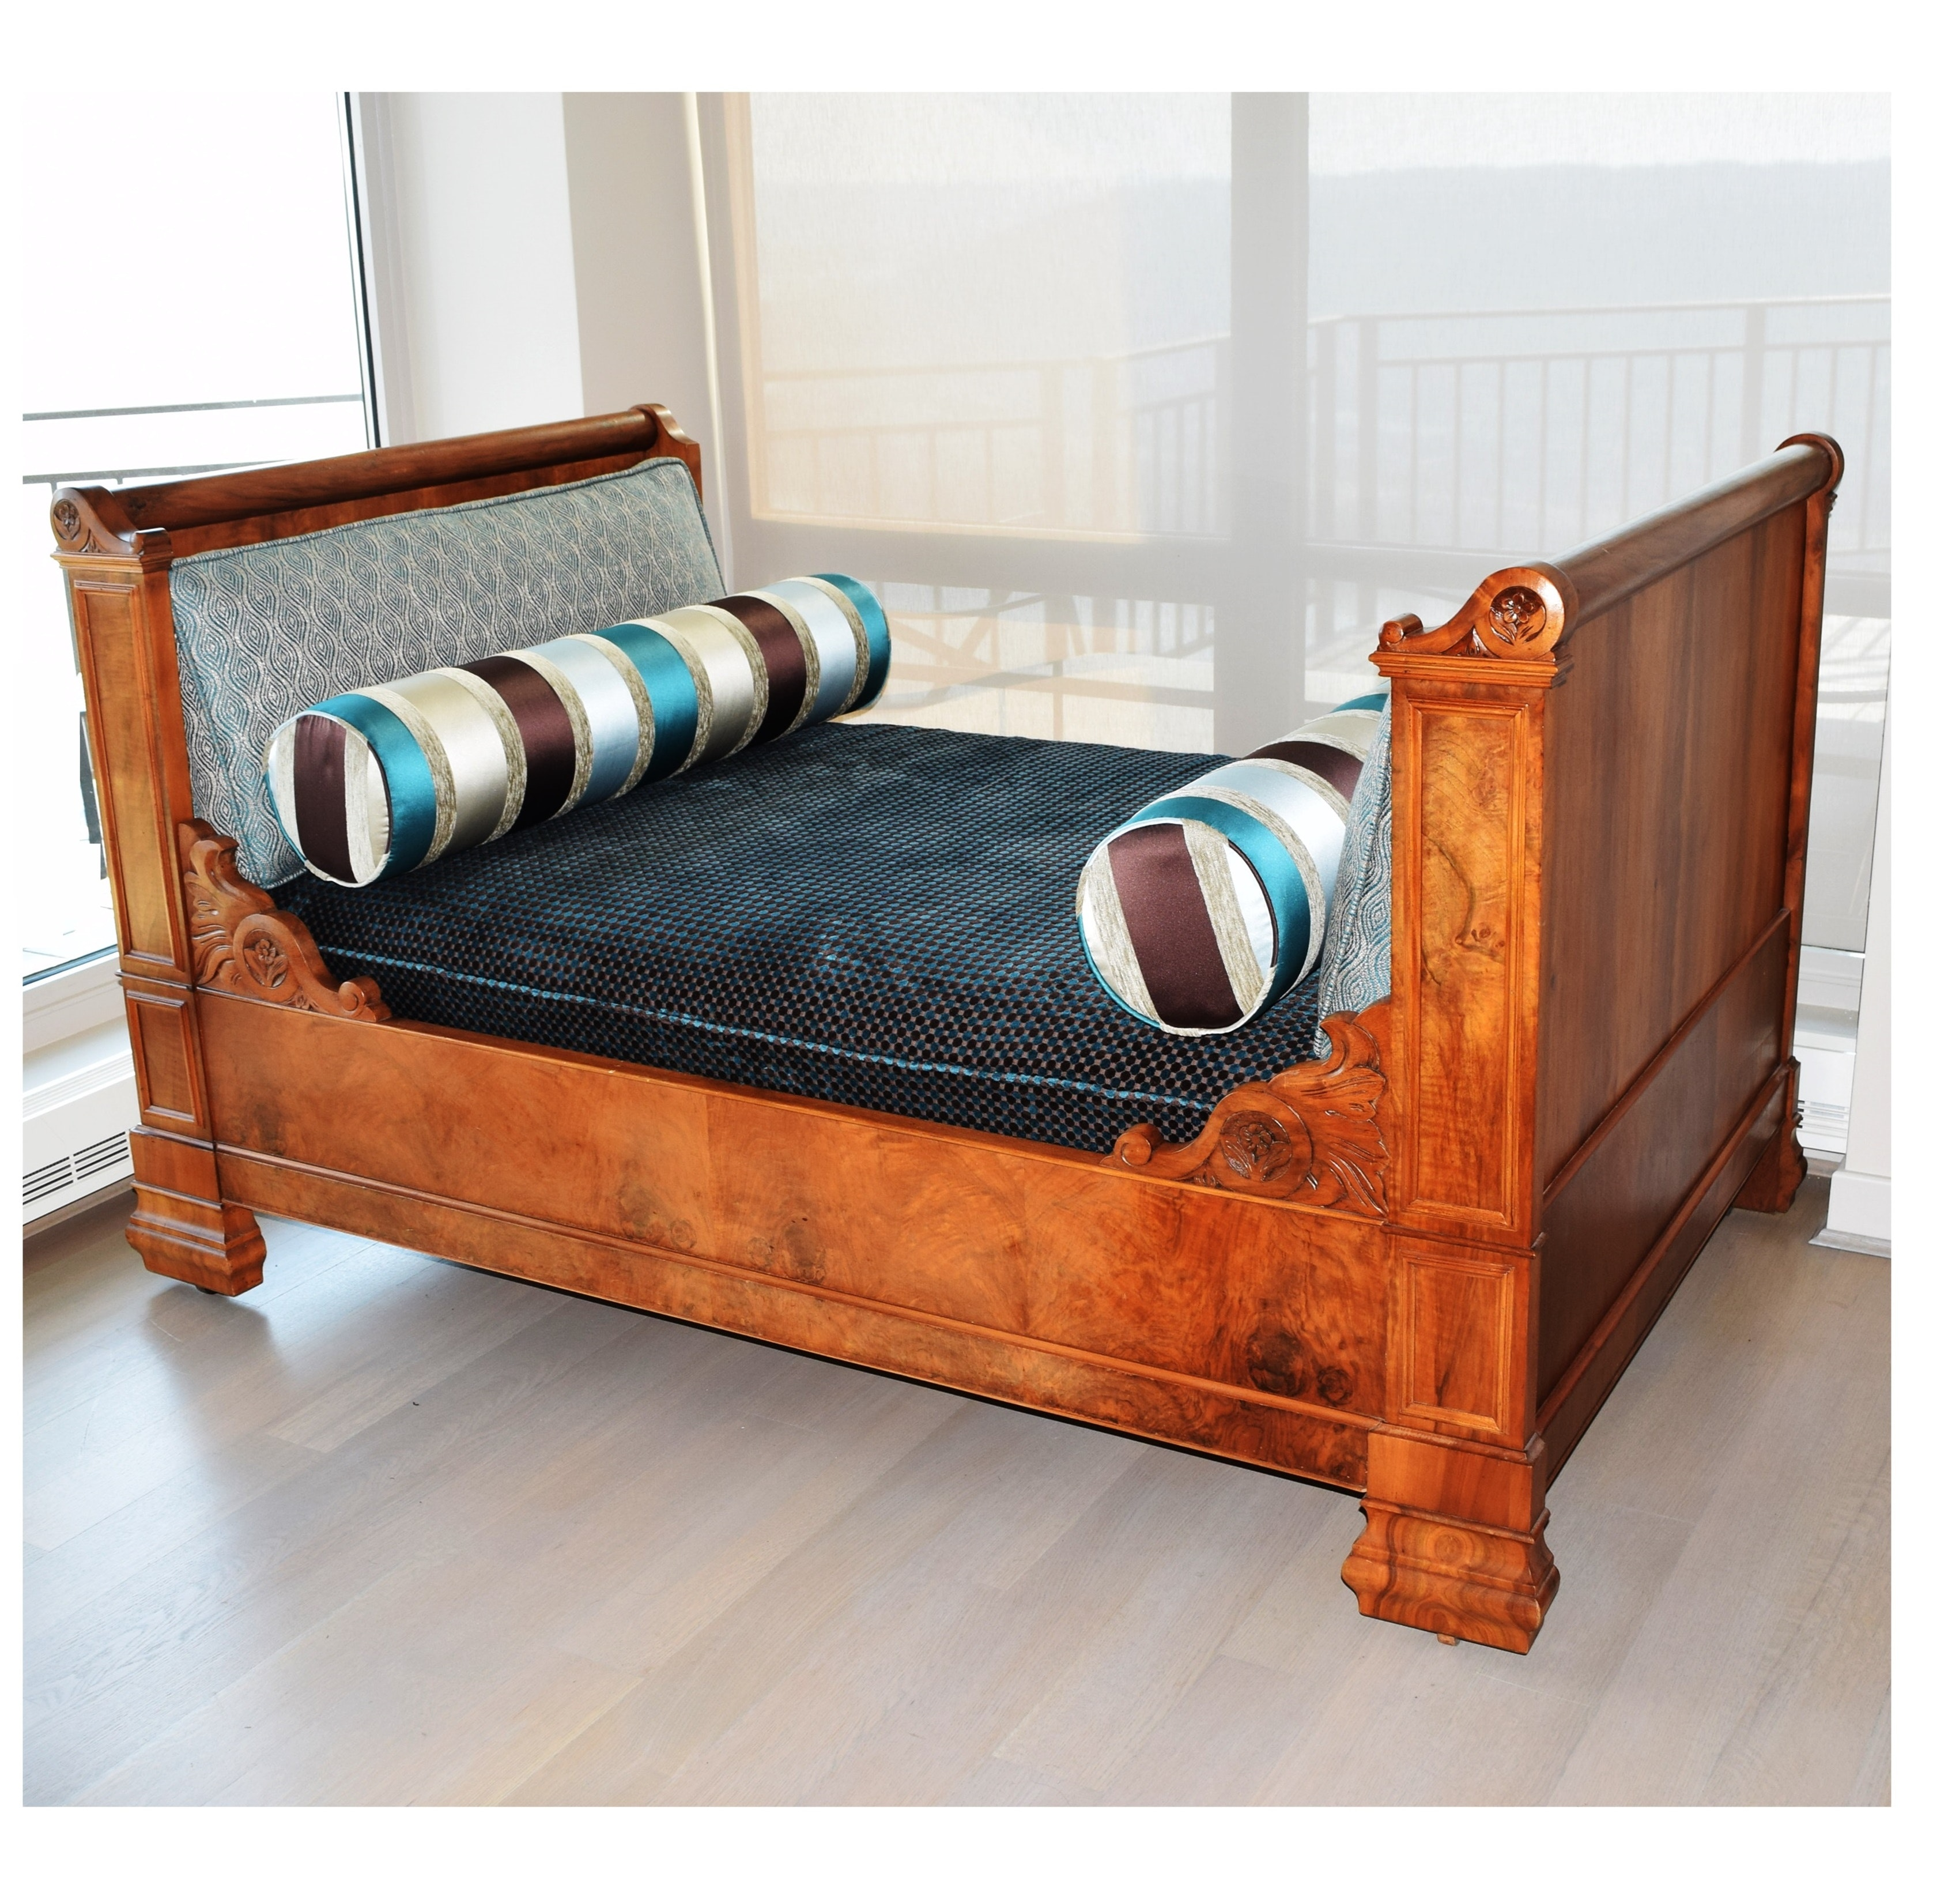 Custom Upholstered 19th Century French Empire Daybed in Walnut